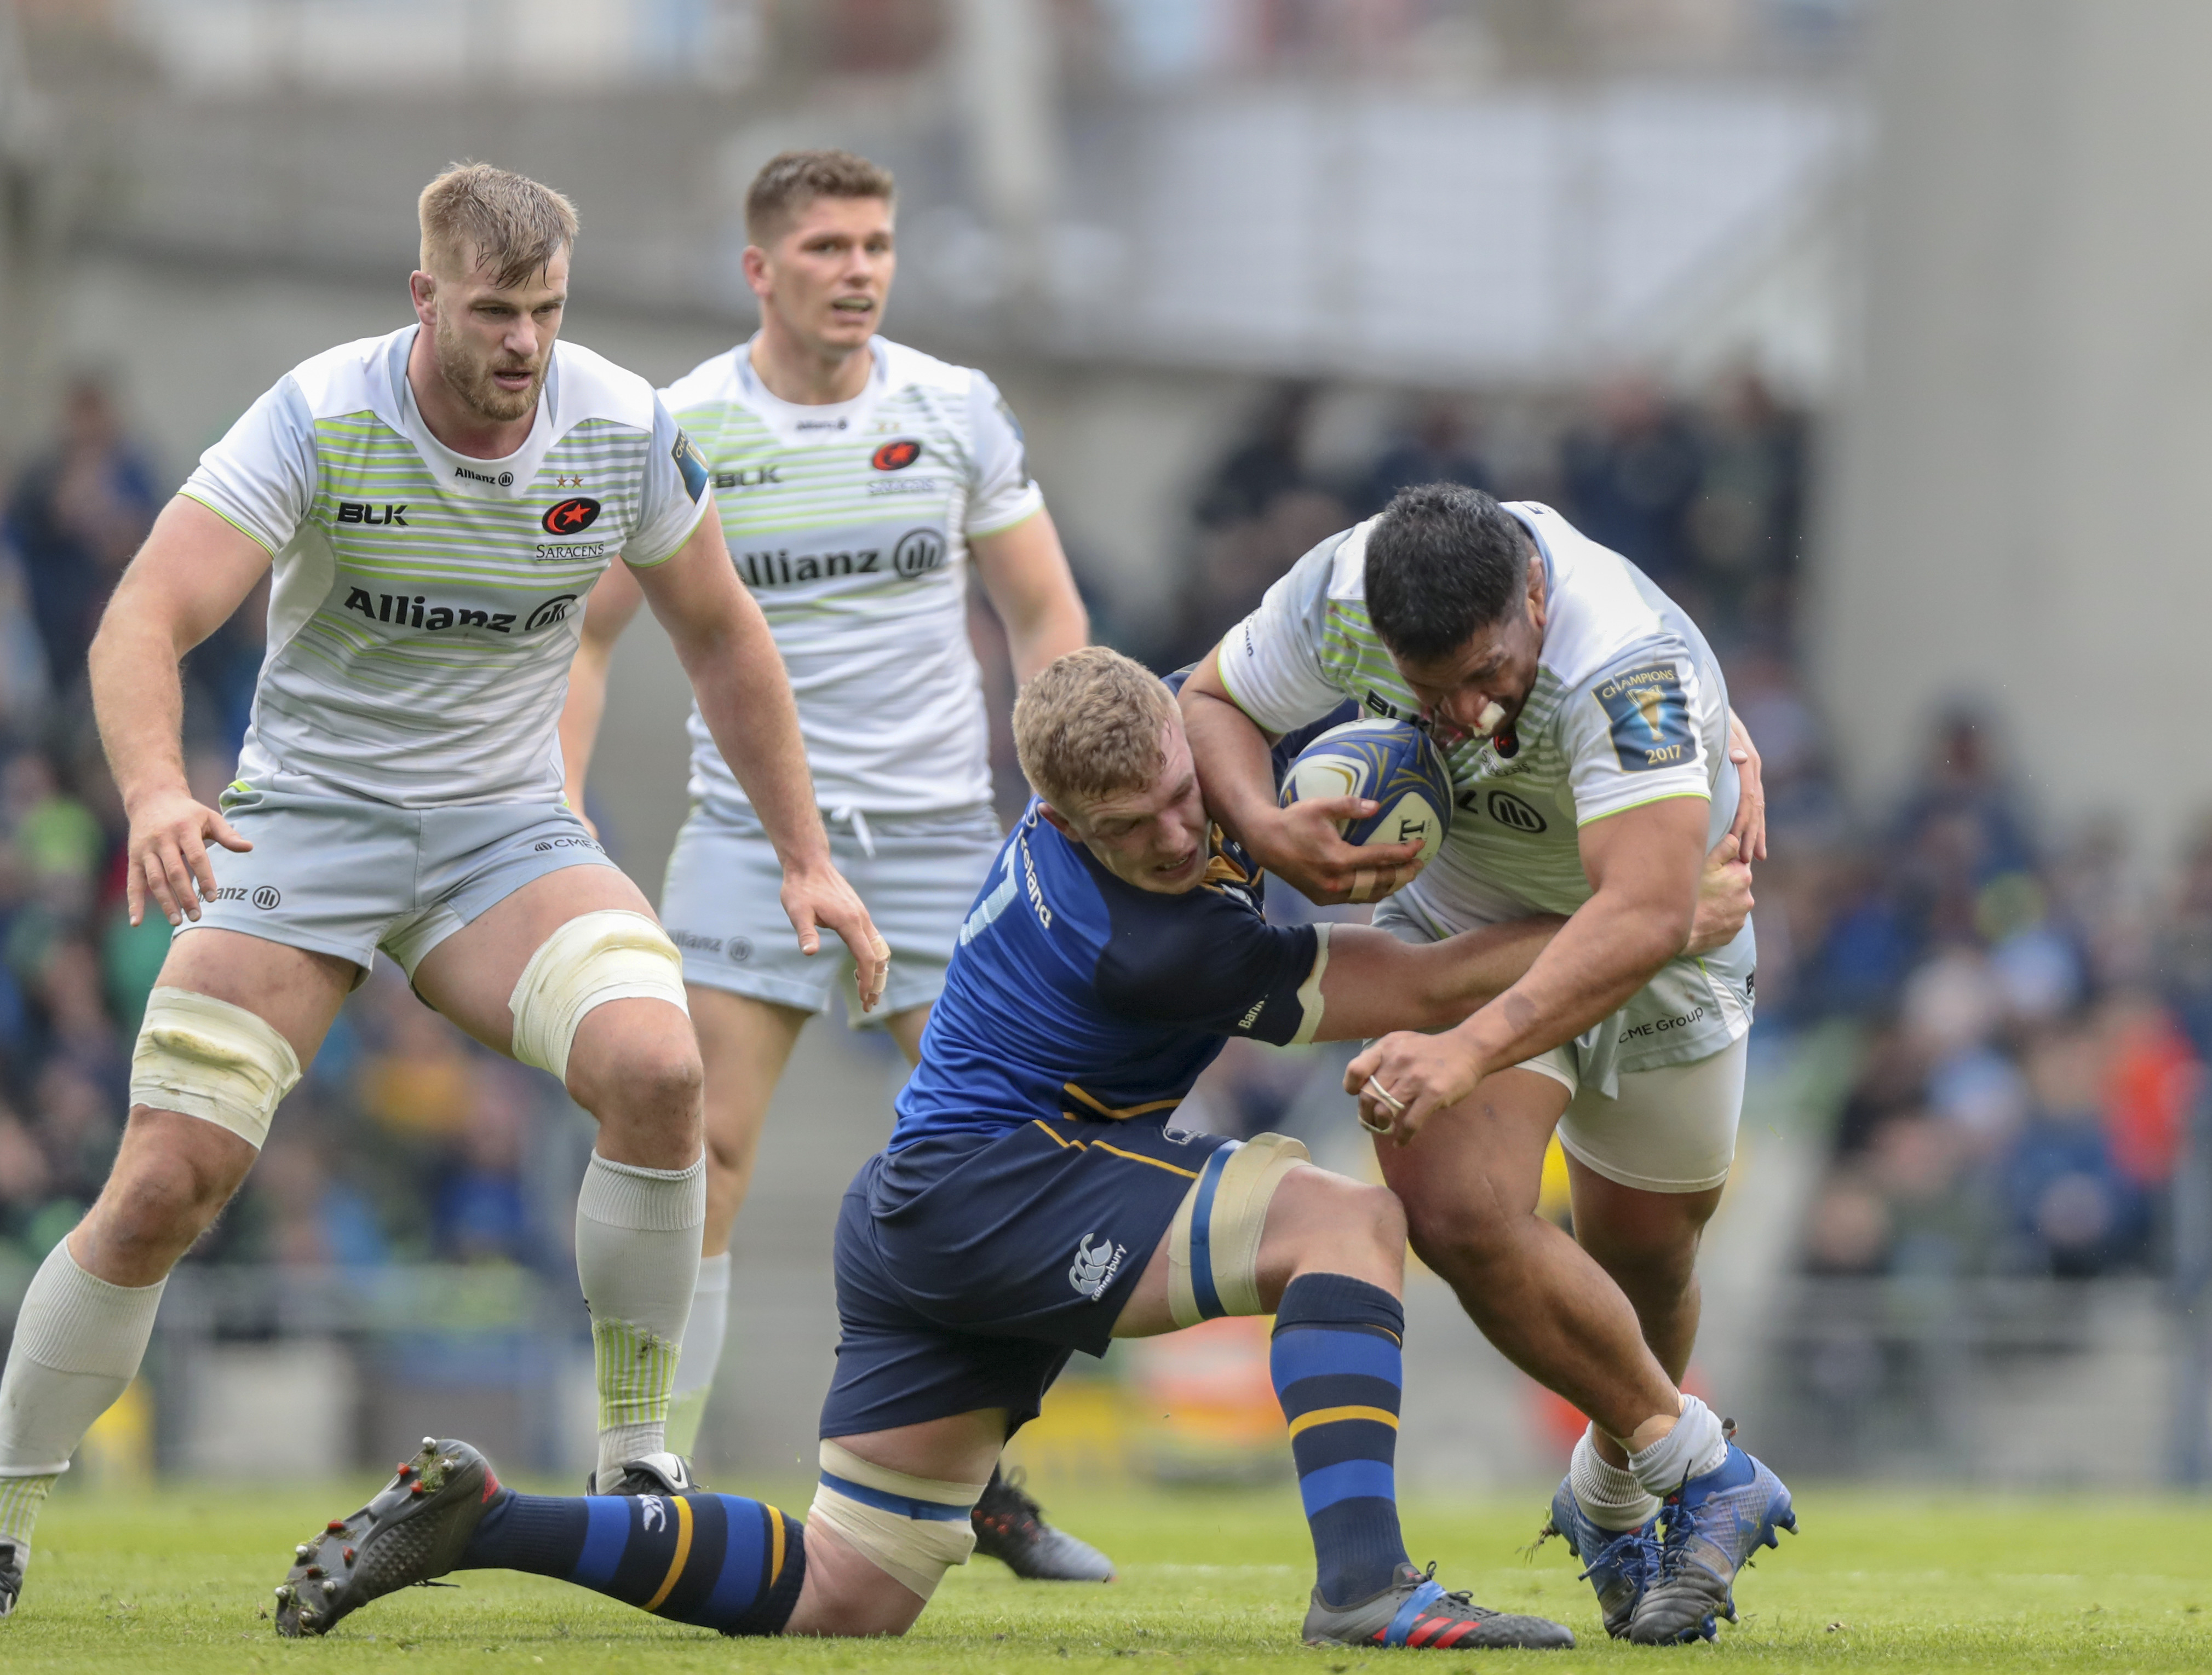 Rugby - Coupes d'Europe - Champions Cup : Saracens-Leinster, l'affiche ultime